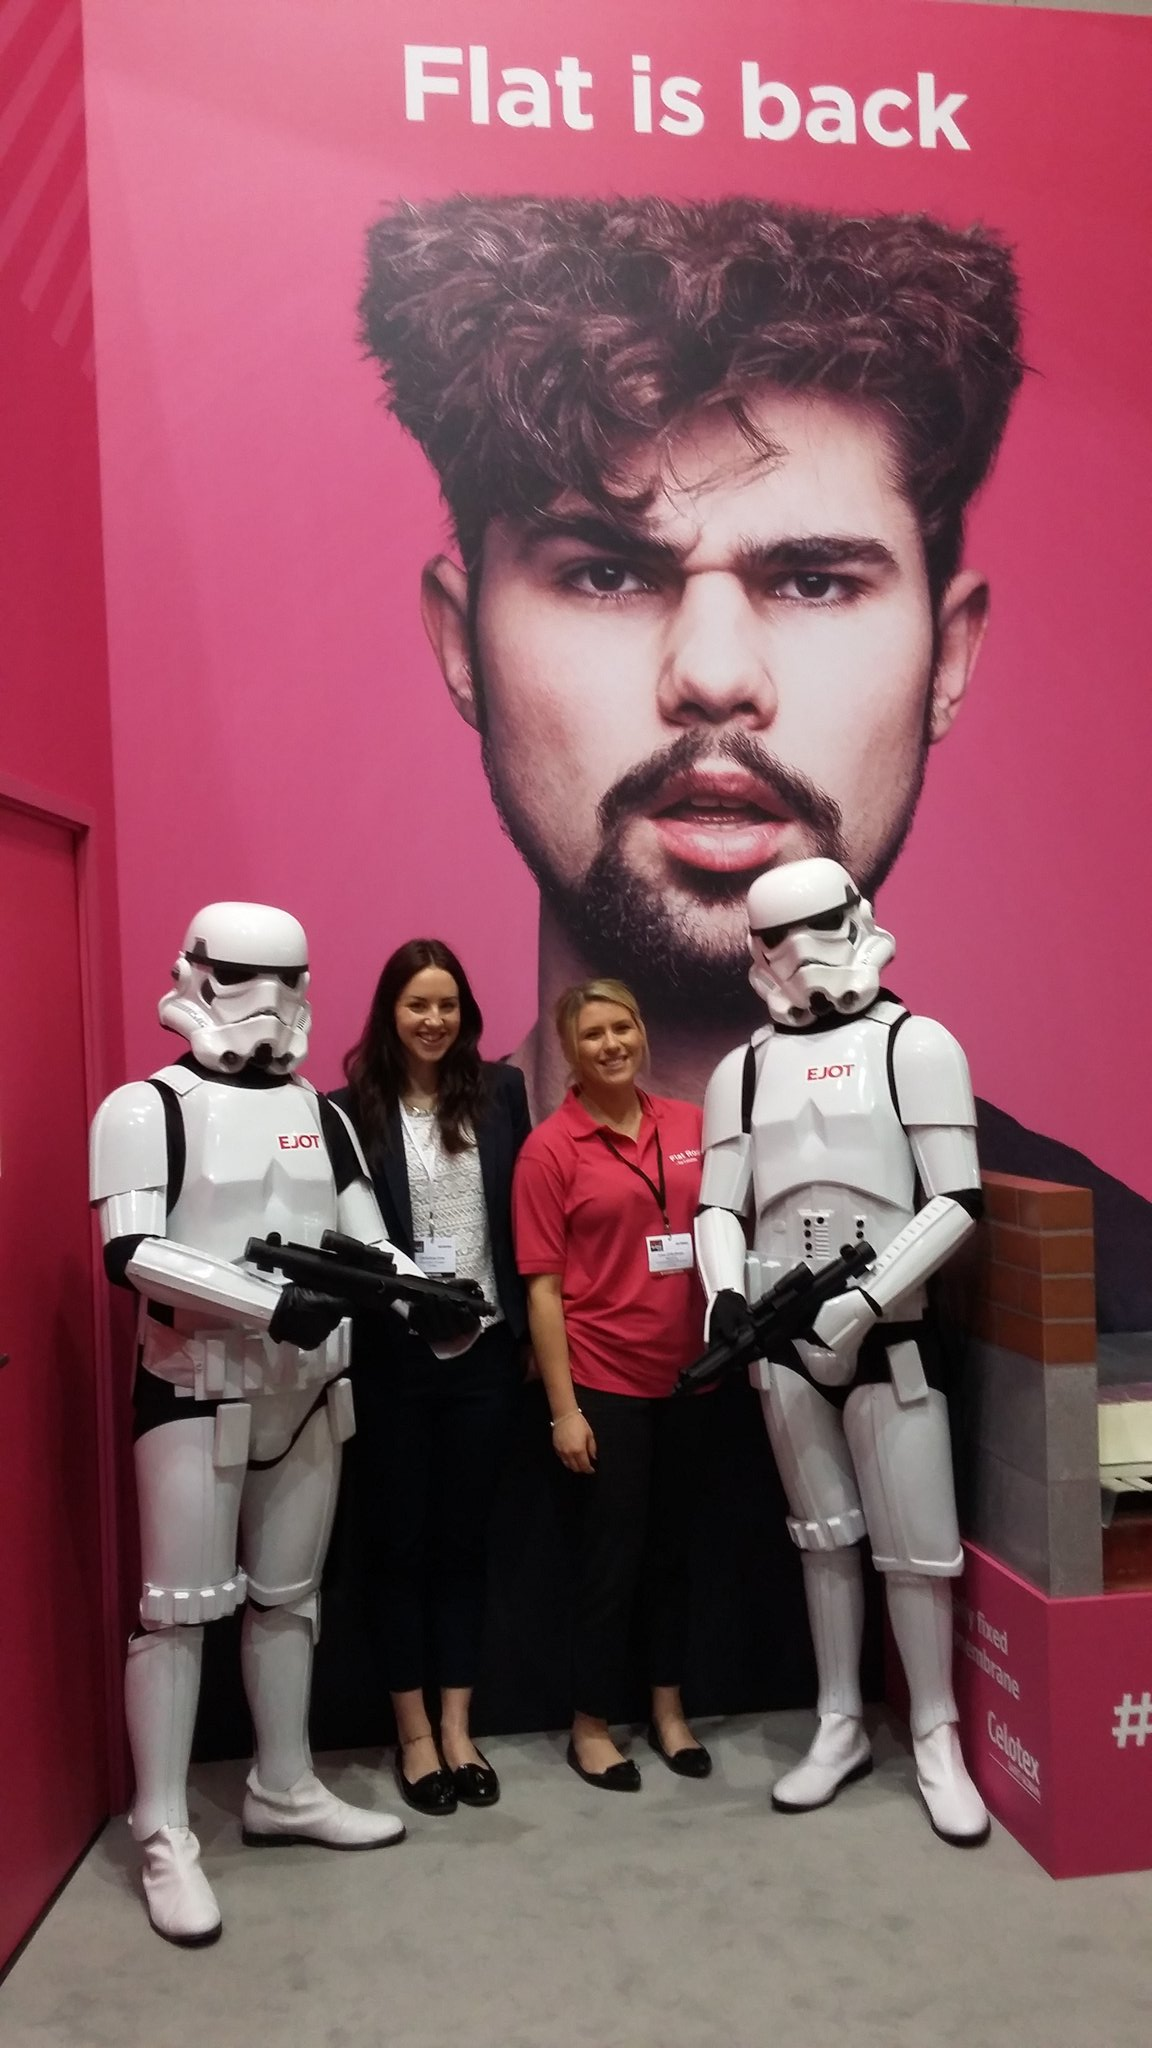 @Lisa_Celotex and Christina with the storm troopers #flatisback https://t.co/kMP6Mbuto4